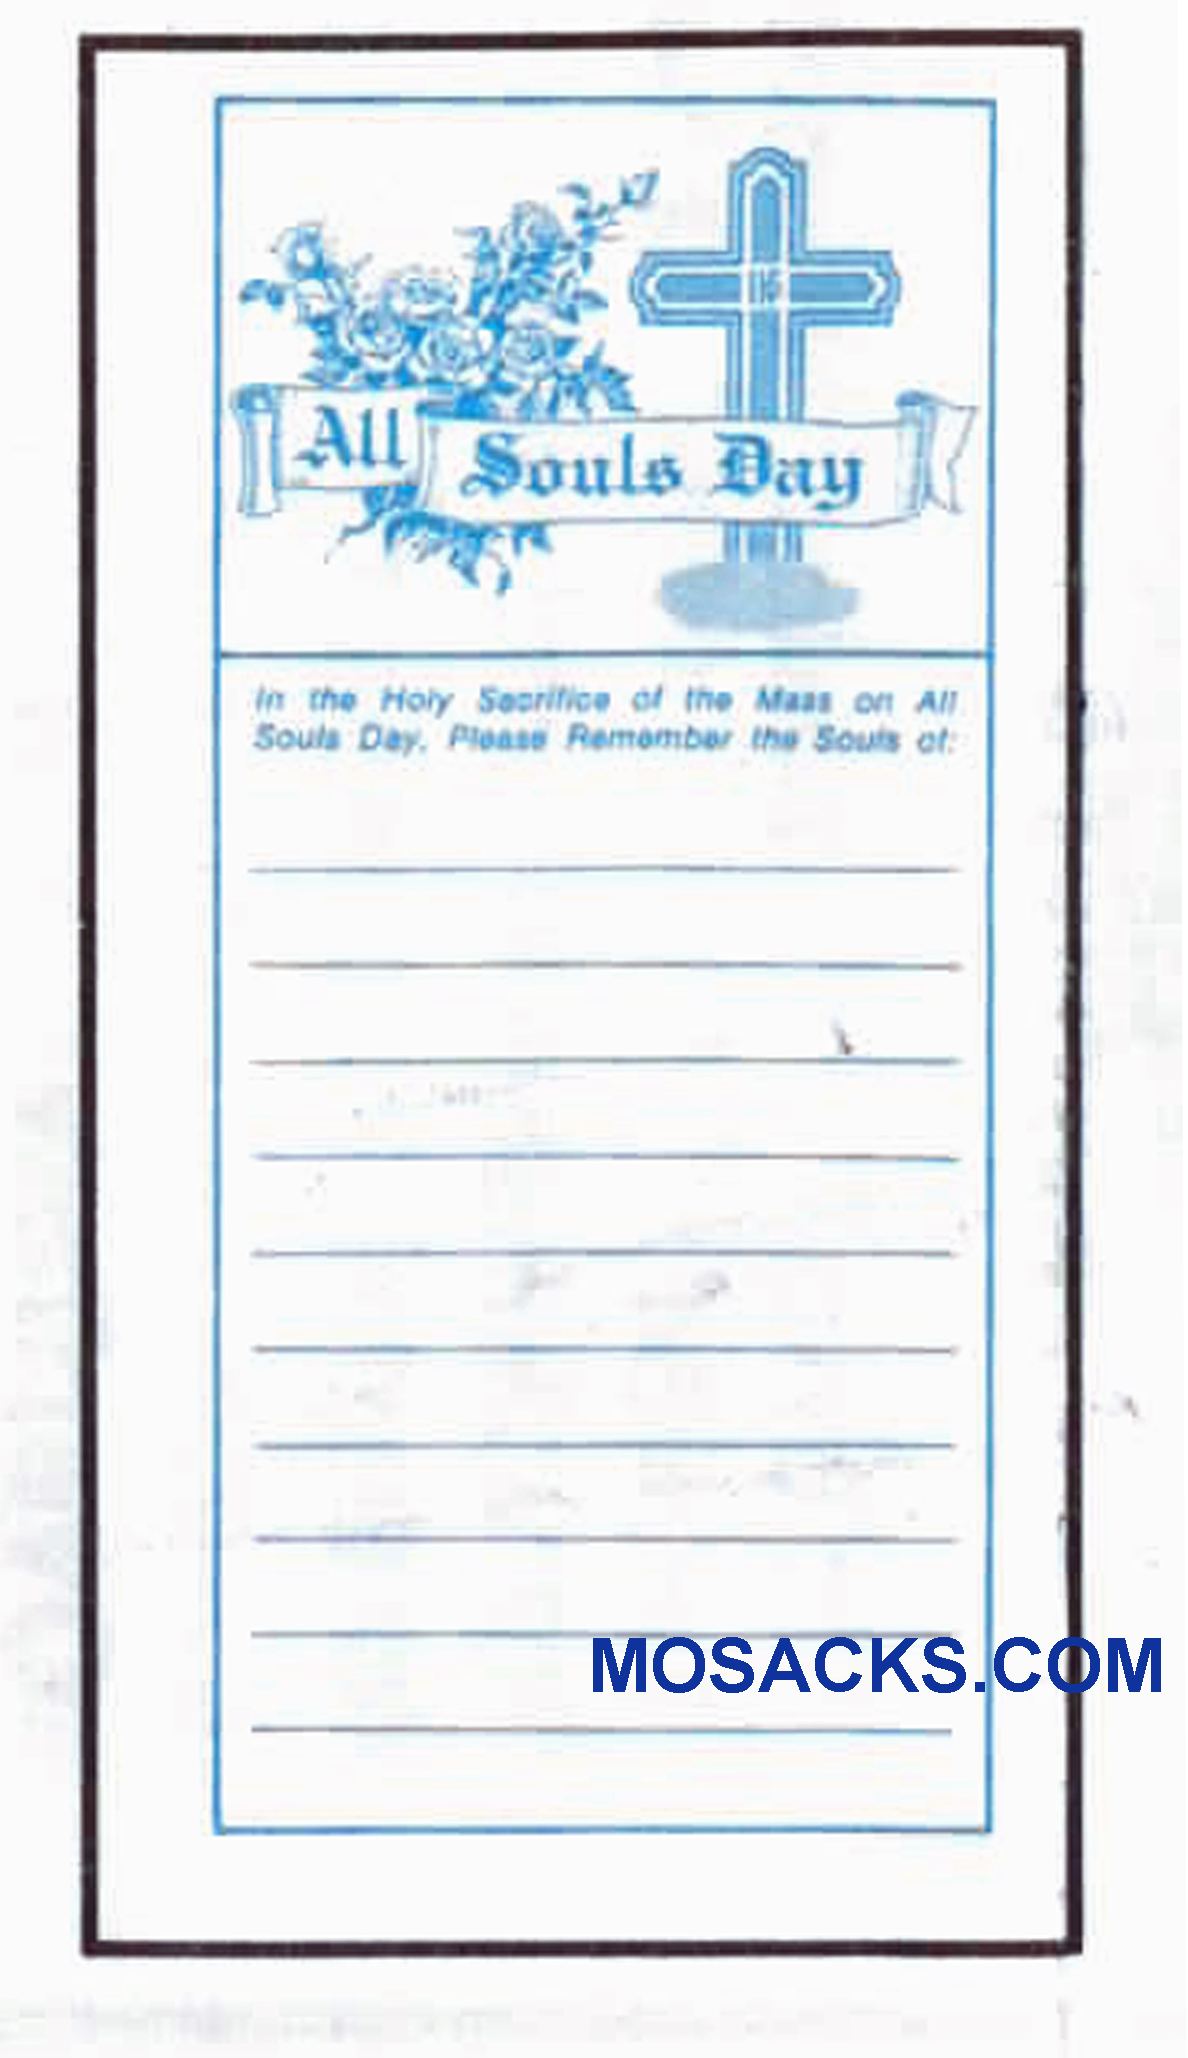 All Souls Day Offering Envelope 6-1/4 x 3-1/8 #304-332